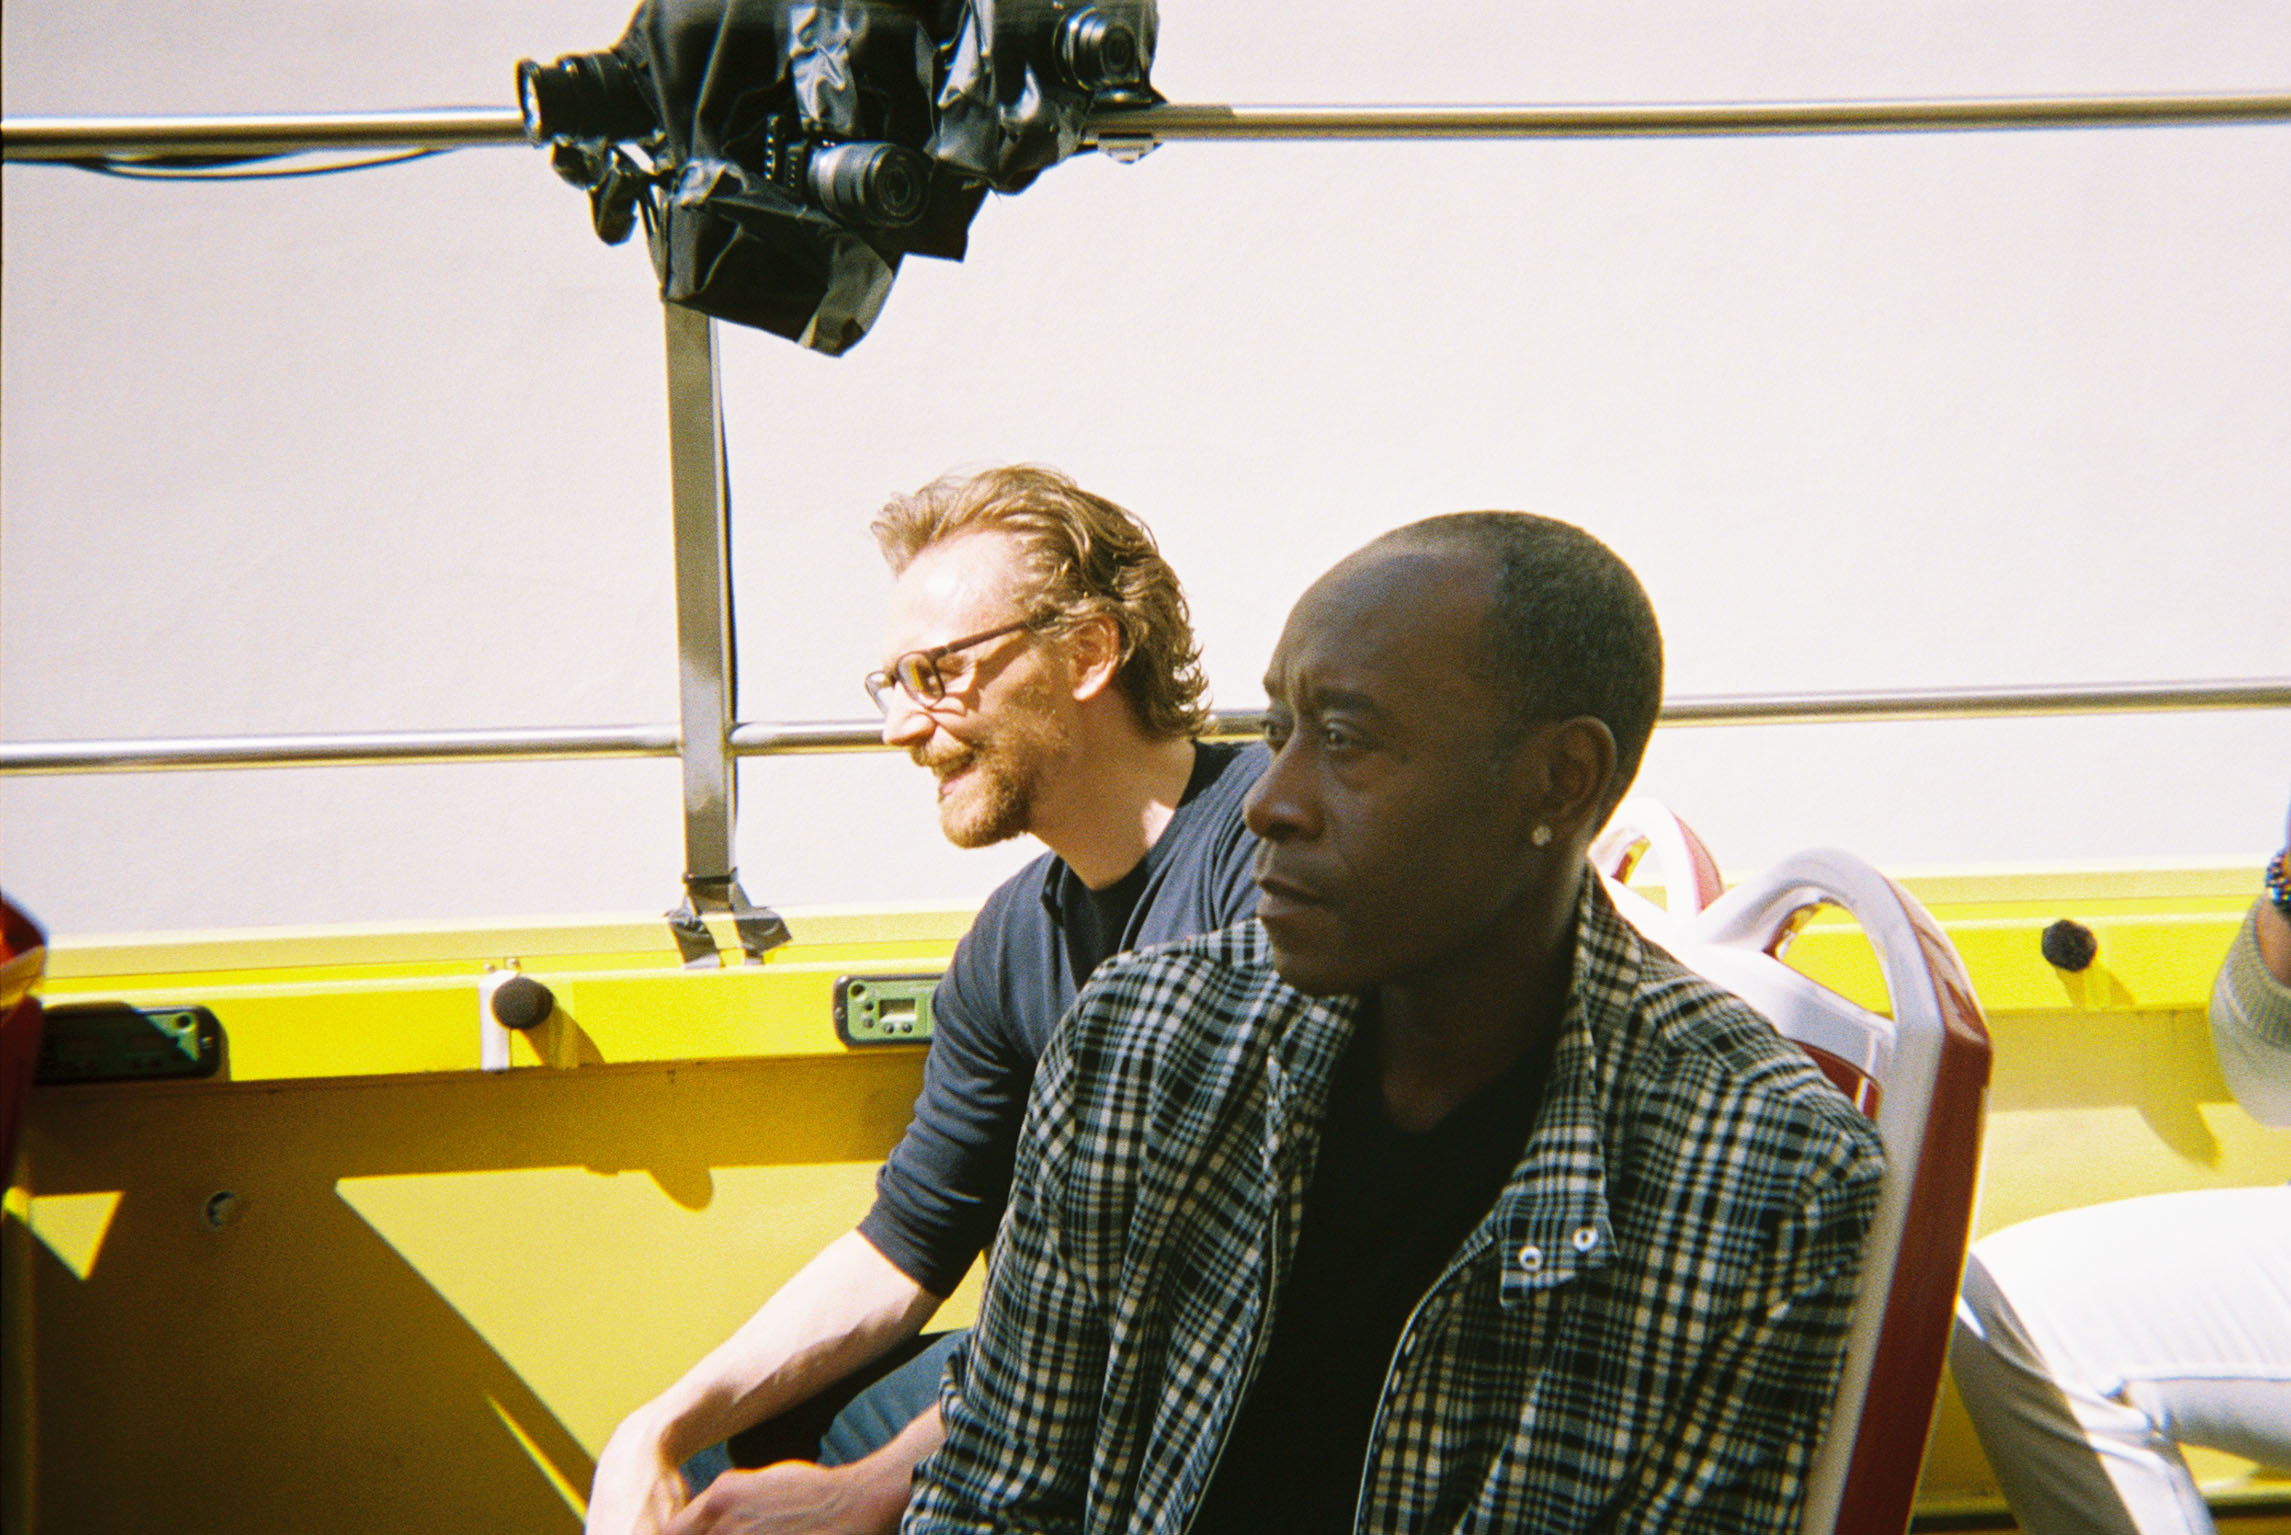 Tom Hiddleston and Don Cheadle